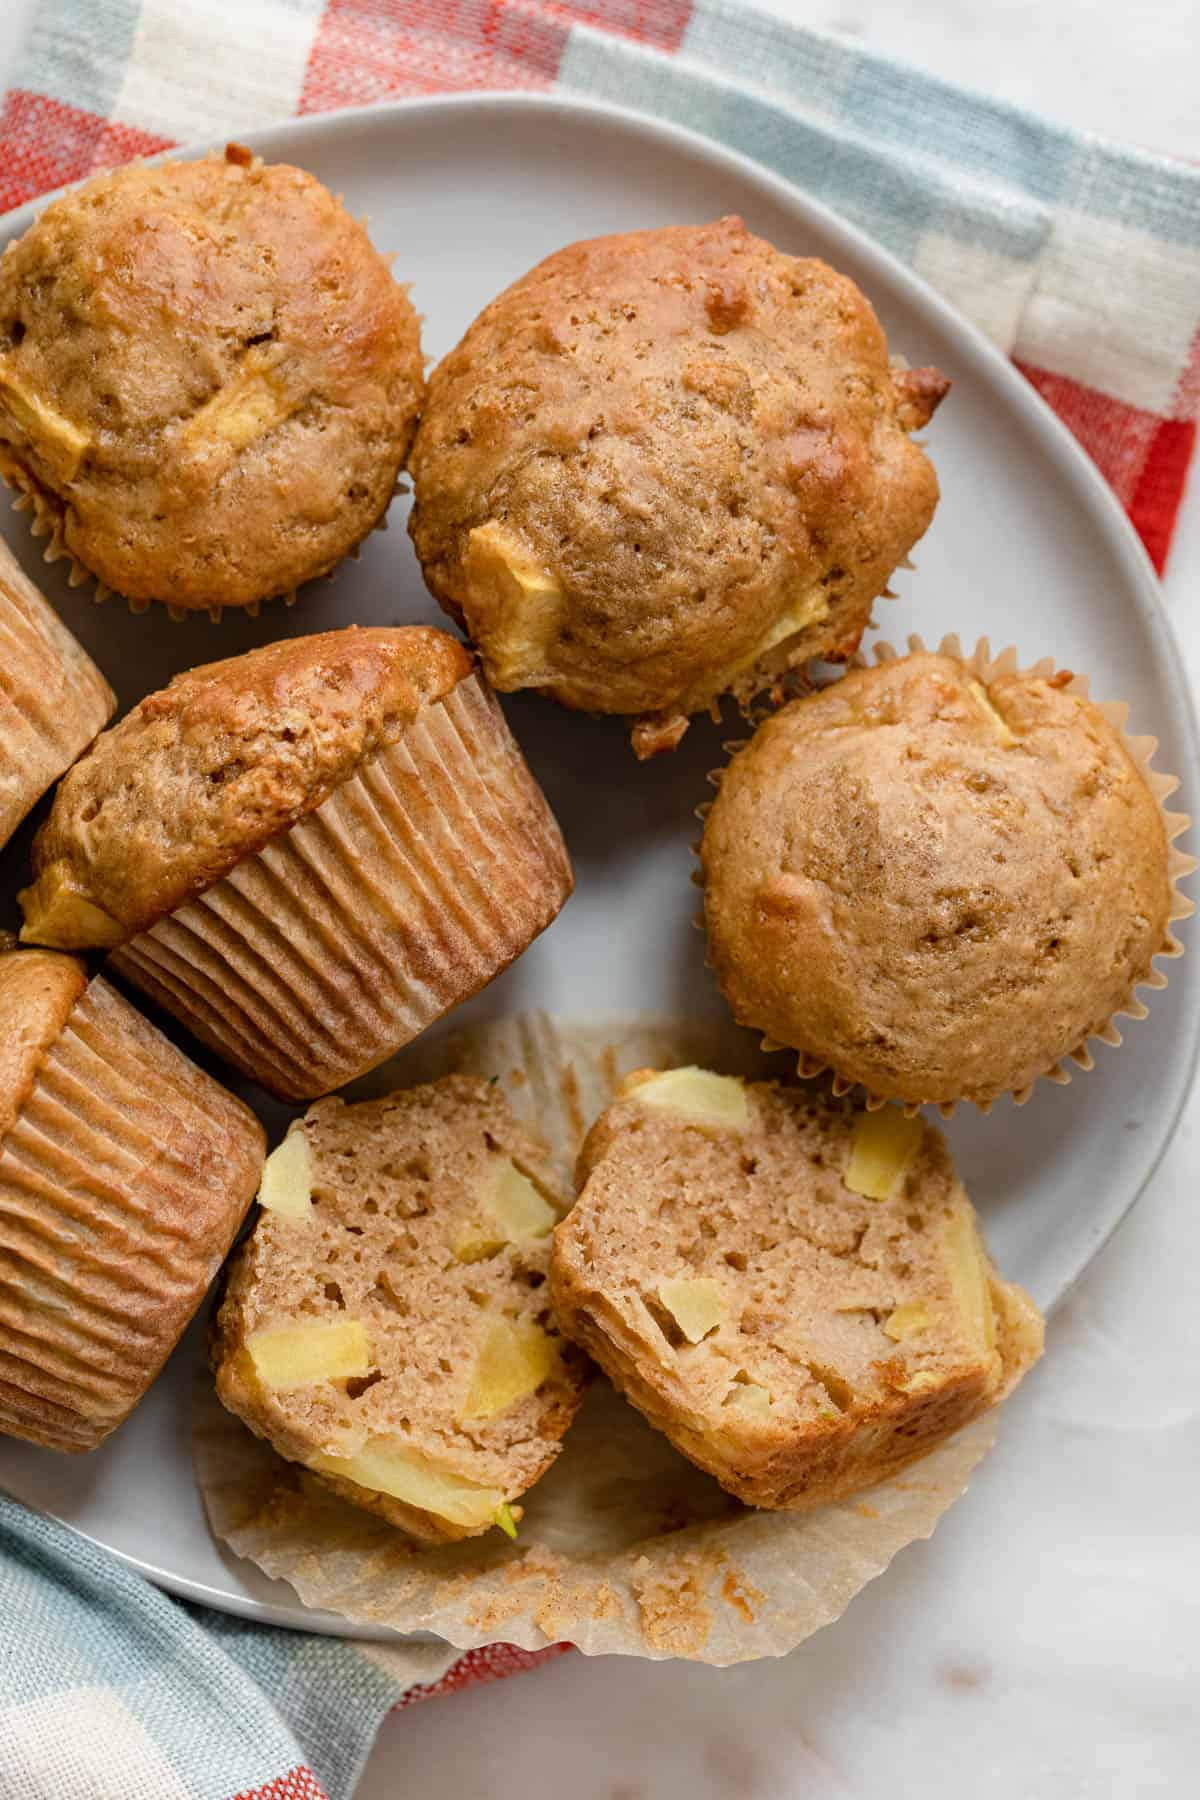 Plate of apple cinnamon muffins with one cut in half to show the apple pieces